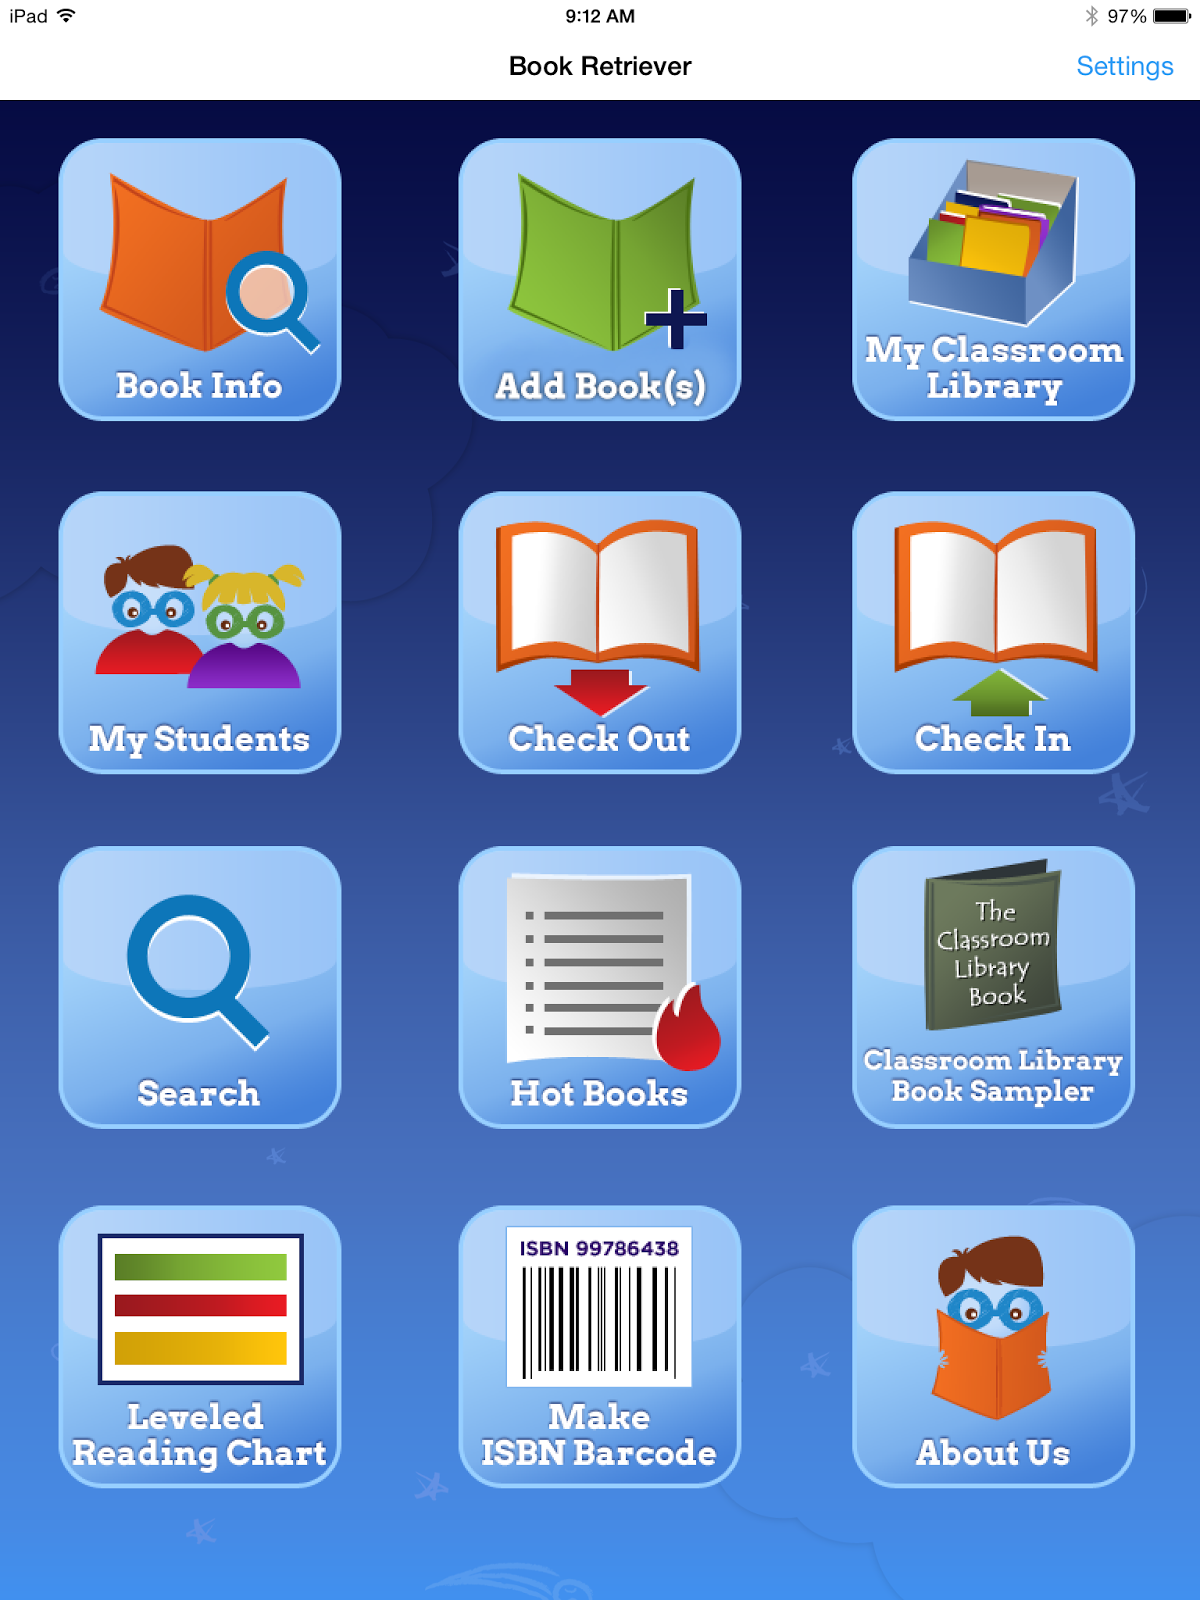 Saturday Apps #8: Use your iPad or iPhone to scan books ...